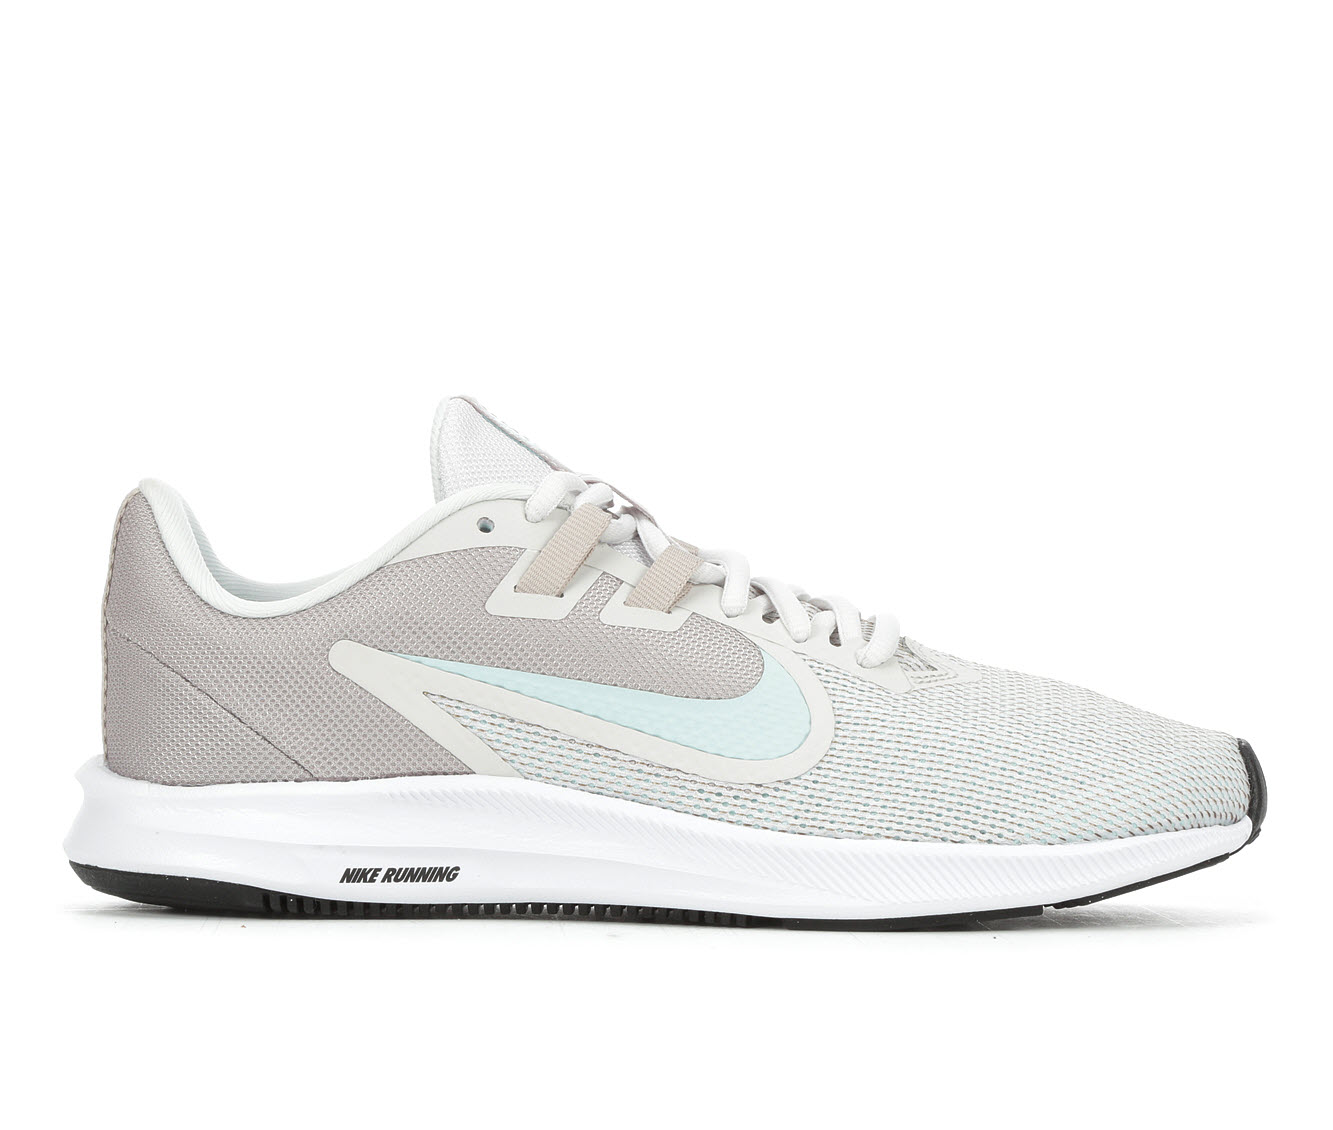 Nike Downshifter 9 Women's Athletic Shoe (Gray)